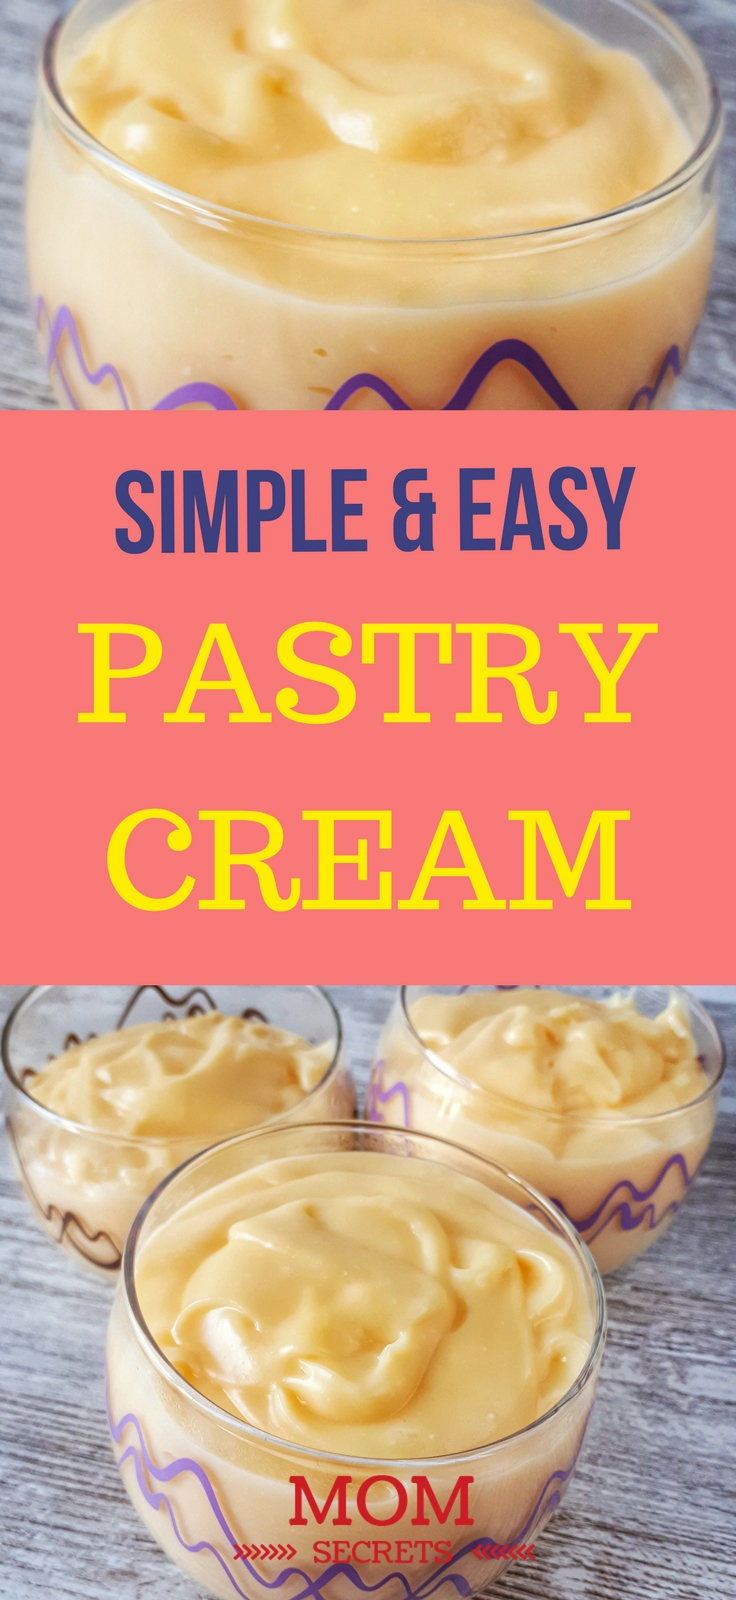 This is a pastry classic that everyone must know how to do it. This custard cream or vanilla custard cream recipe is unbelievably quick and easy to make.